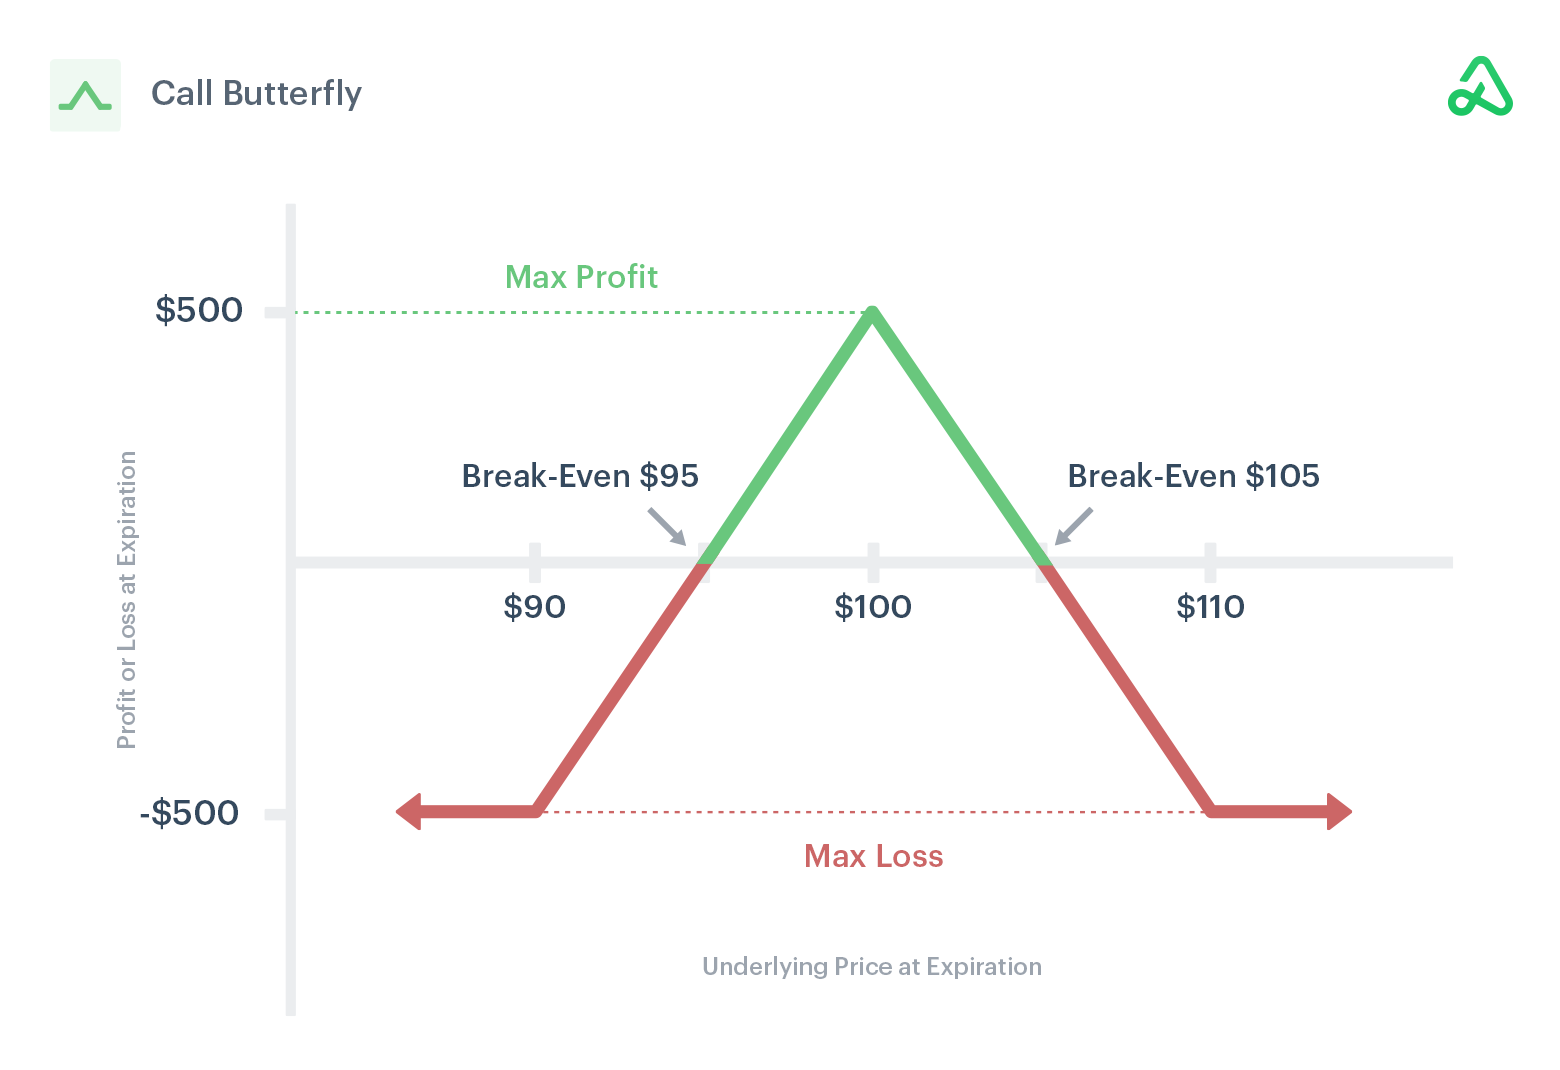 Image of call butterfly payoff diagram showing max profit, max loss, and break-even points